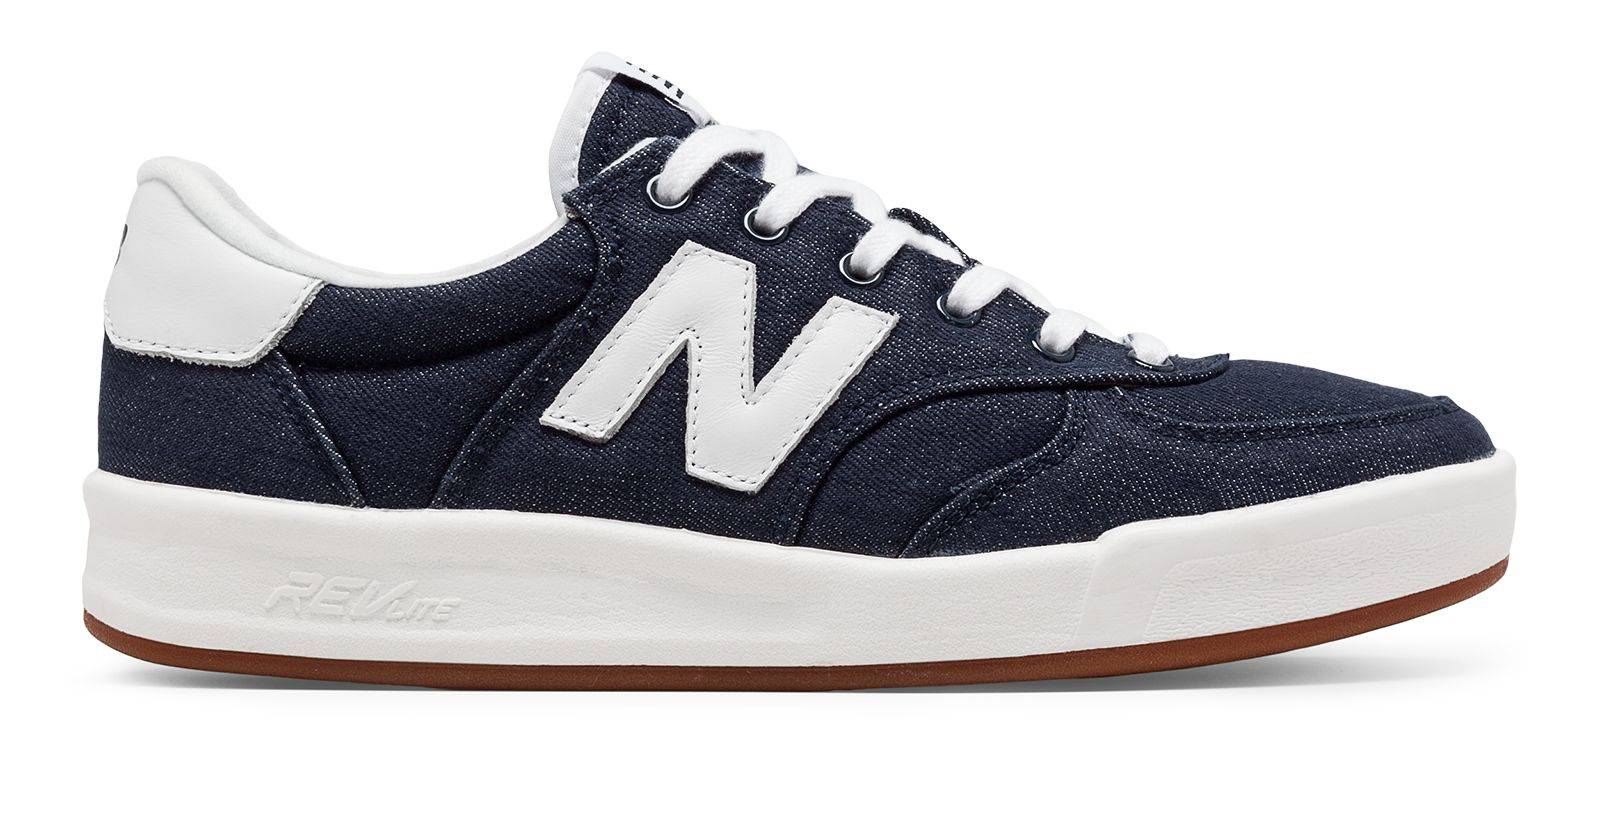 NB 300 Cotton Denim, Pigment with White